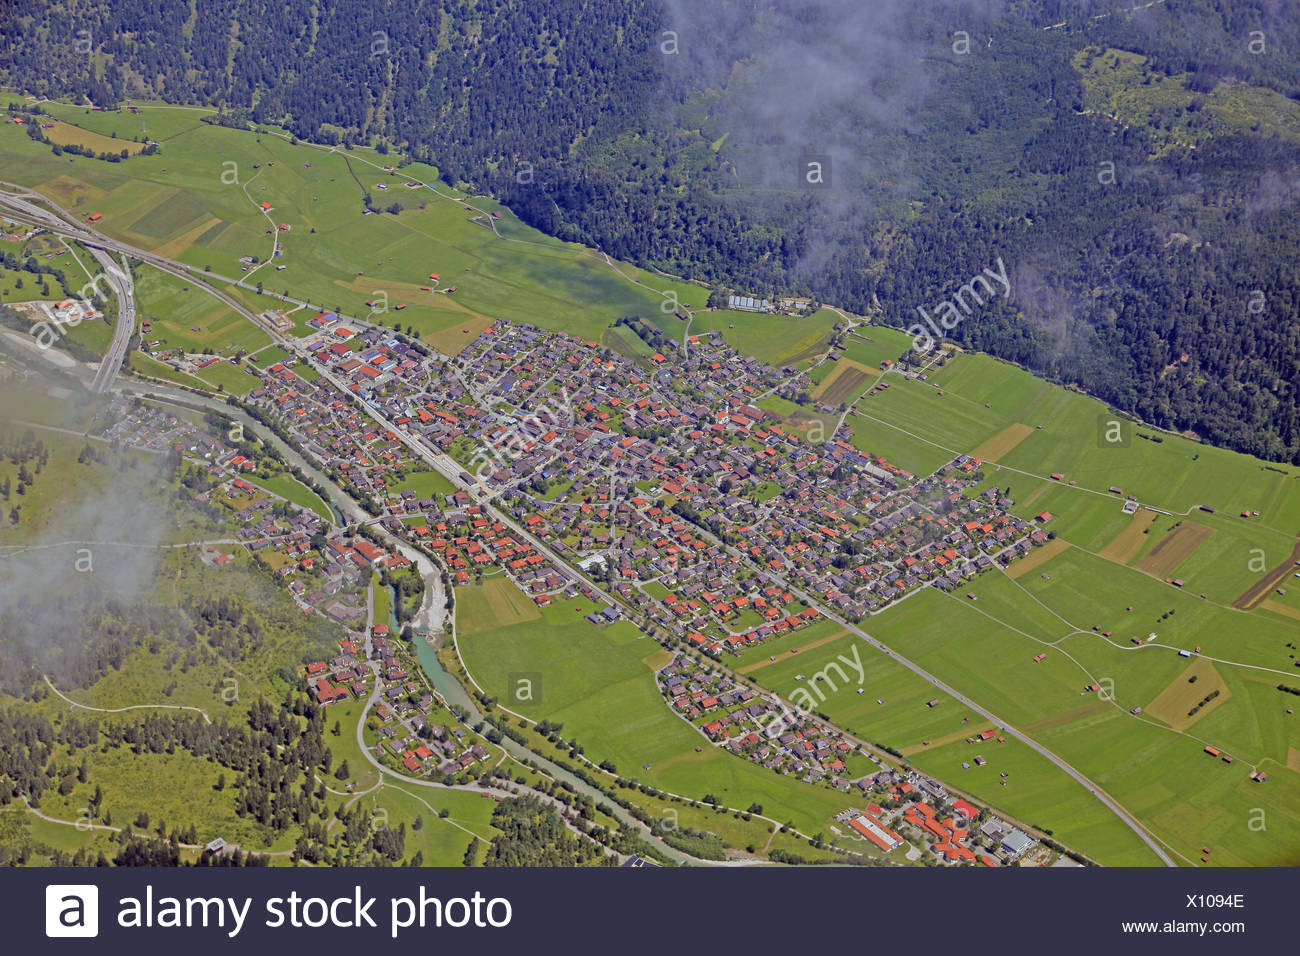 Germany, Upper Bavaria, Farchant, aerial shots, aerial picture, Bavaria, in Bavarian, groups trees, agrarian country, federal highway, ways, pastureland, barn, hay barn, farm, court groups, scenery, man-made landscape, aerial health resort, houses, roofs, - Stock Image